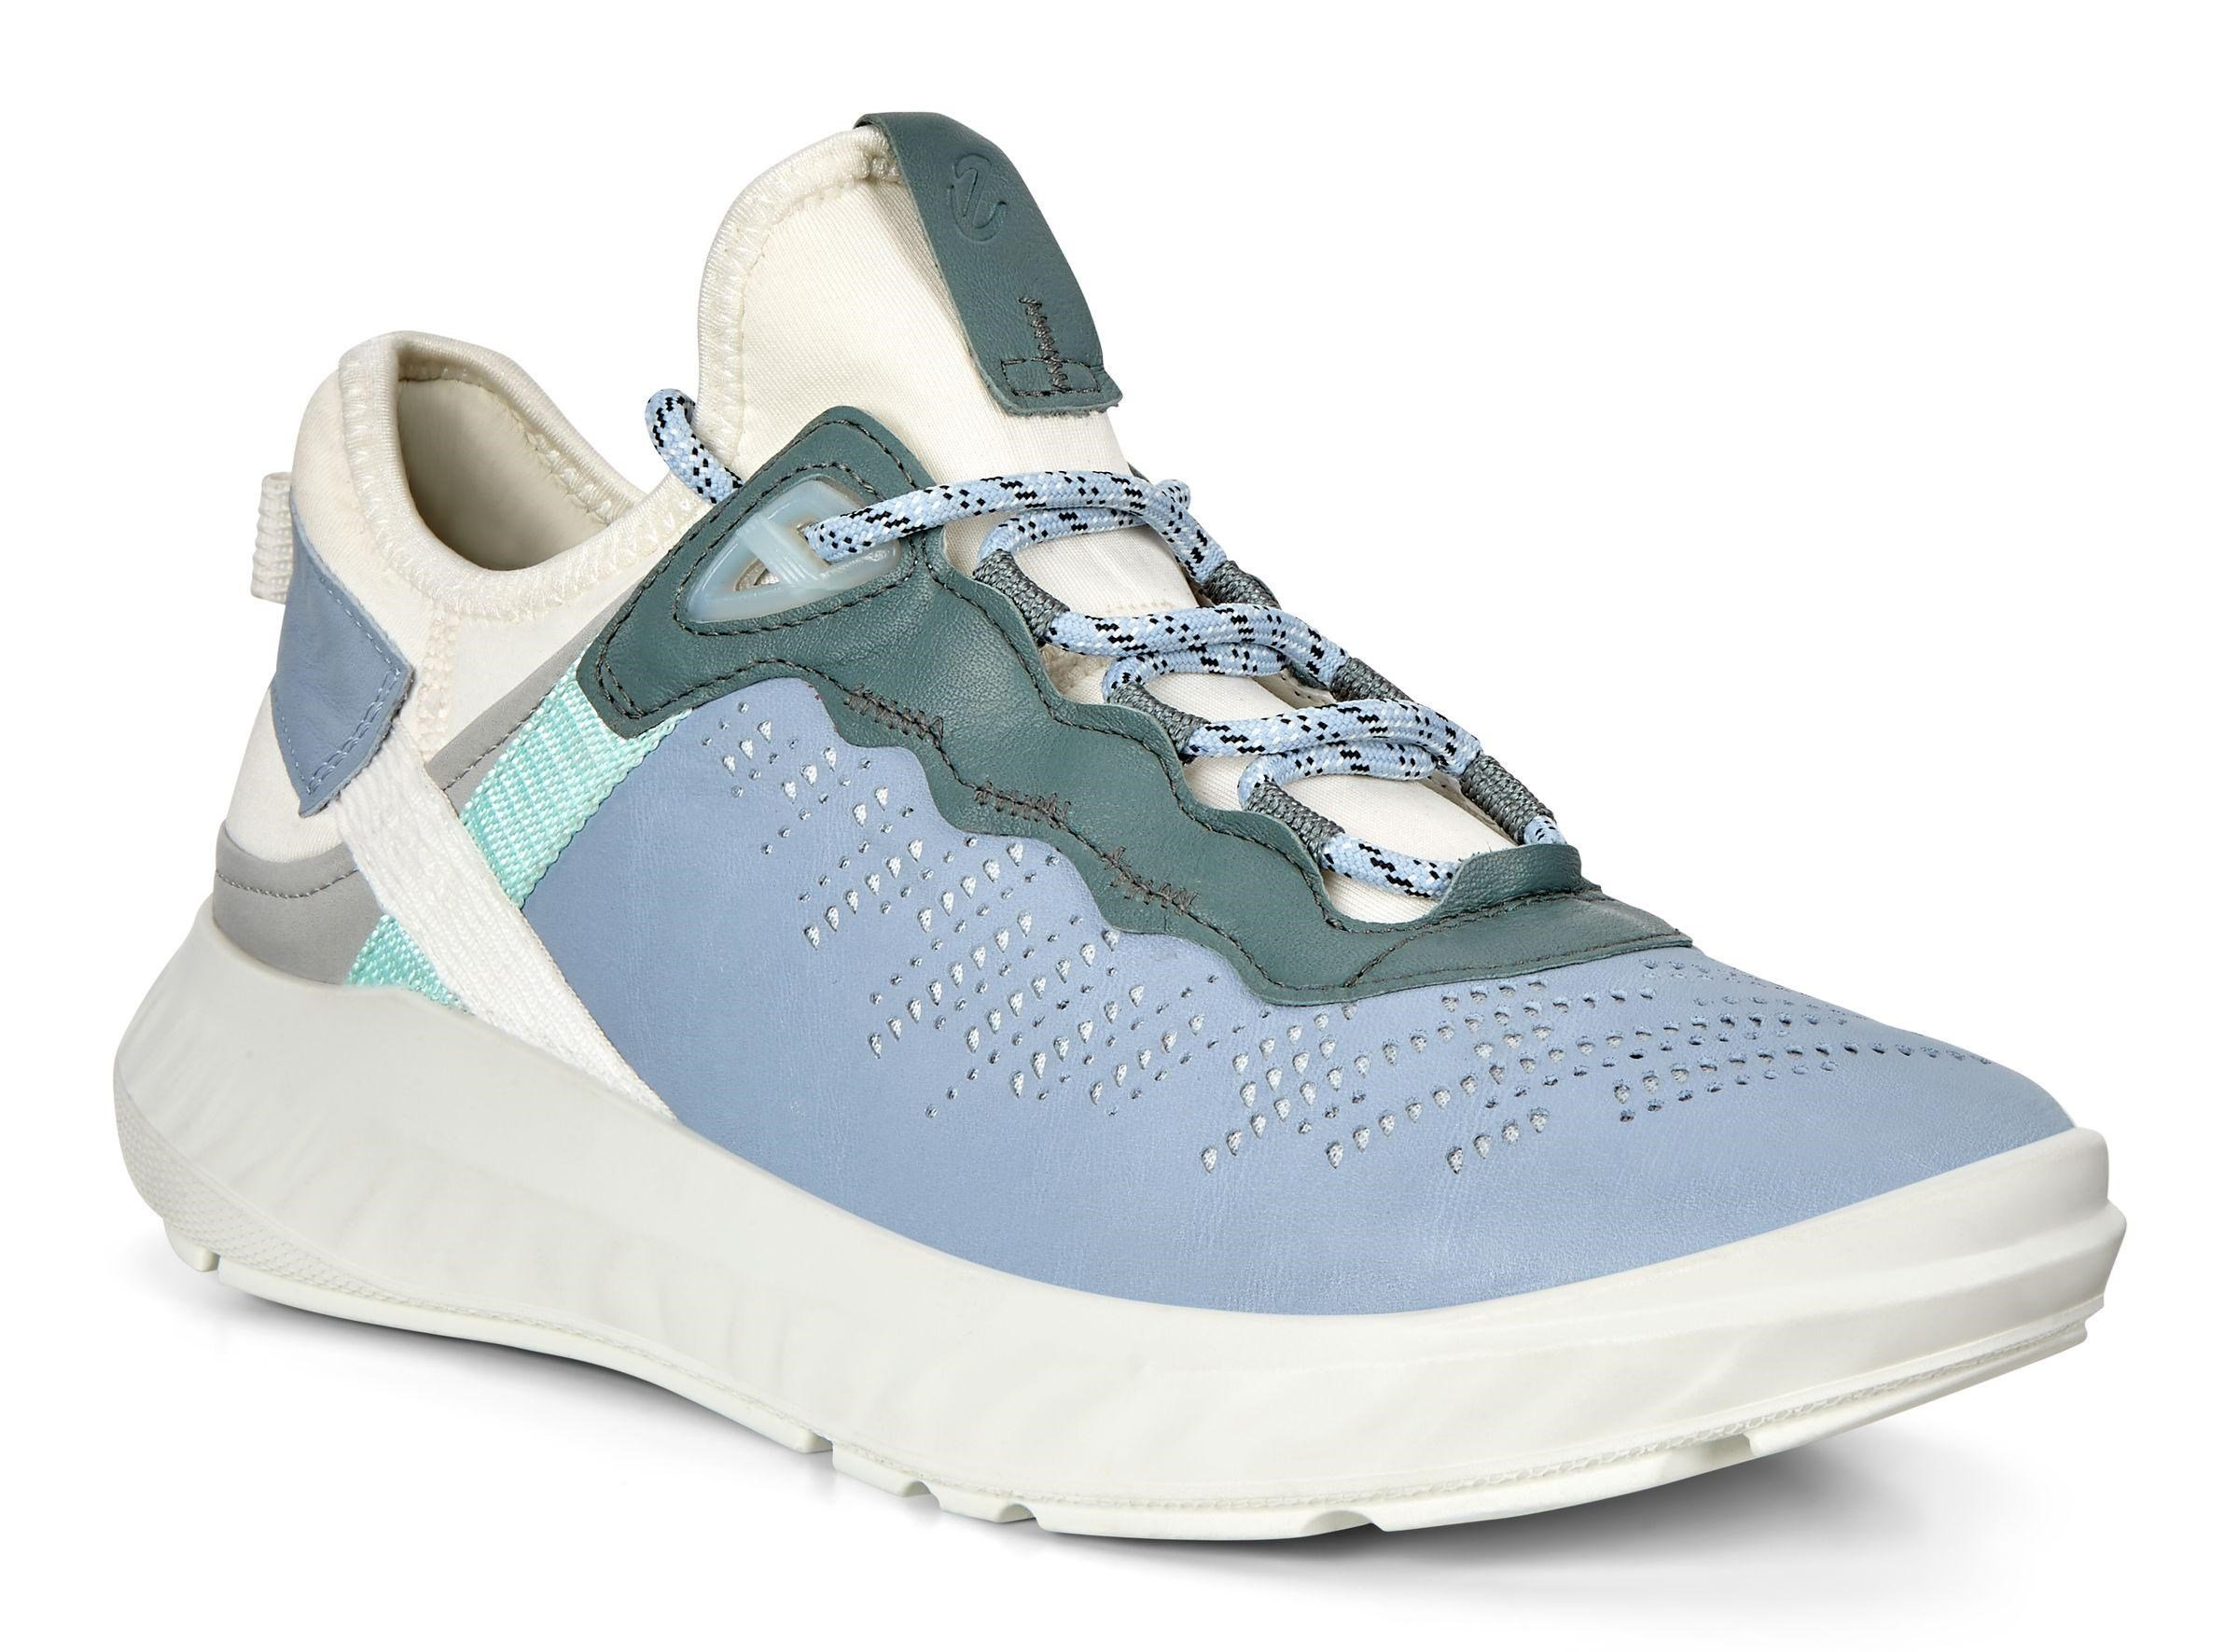 Ecco ST1 LITE W 837313-51971MULTICOLOR DUSTY BLUE - March 8 20